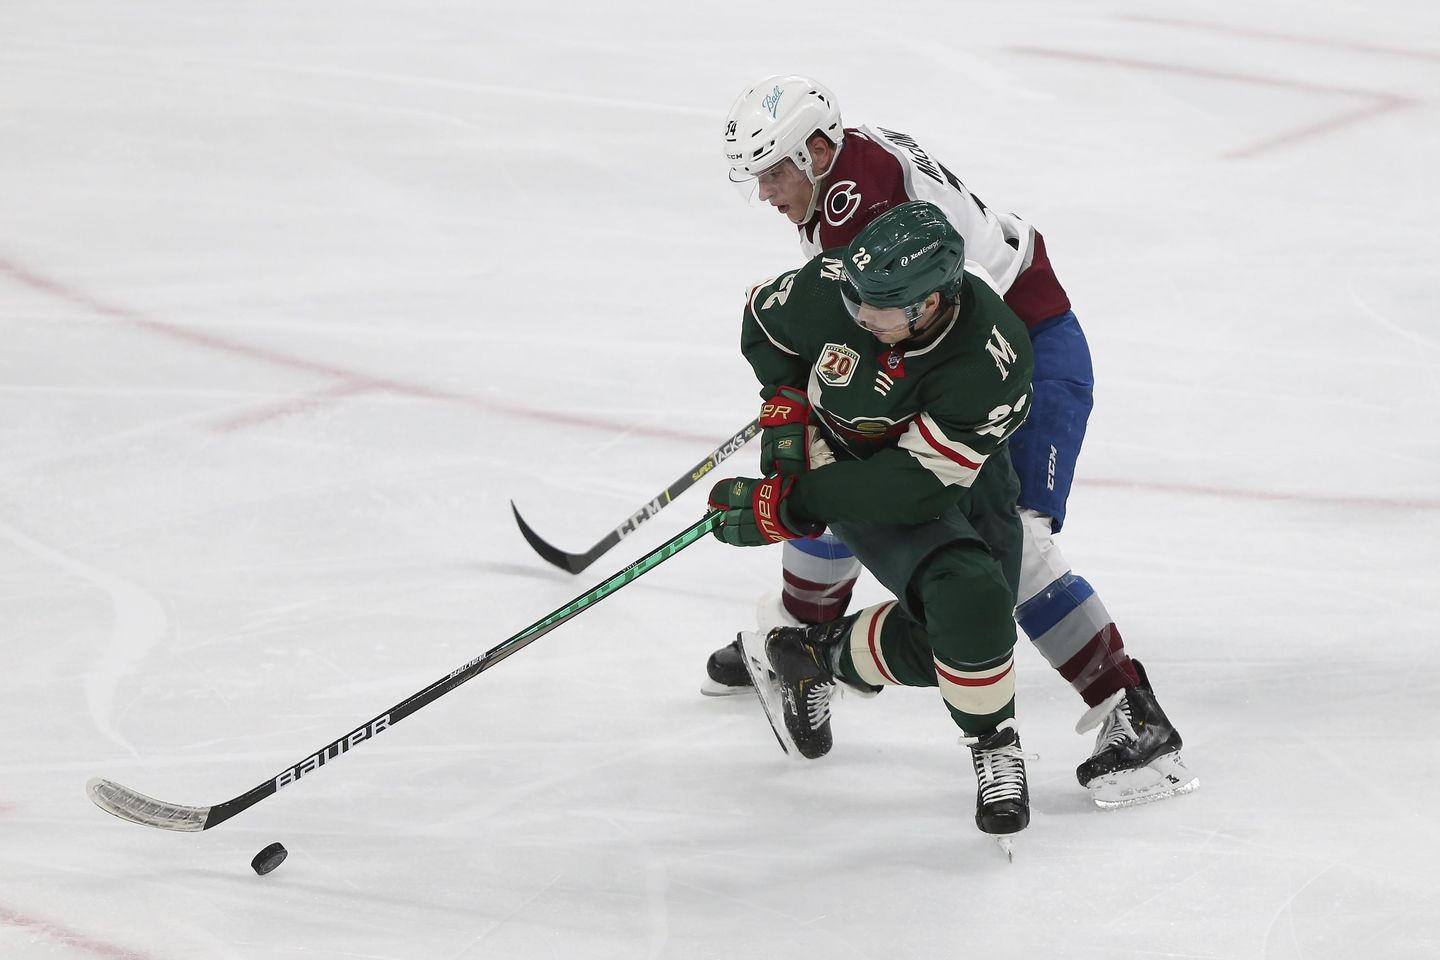 Avs' MacDonald gets 2-game ban for hit to head vs. Wild